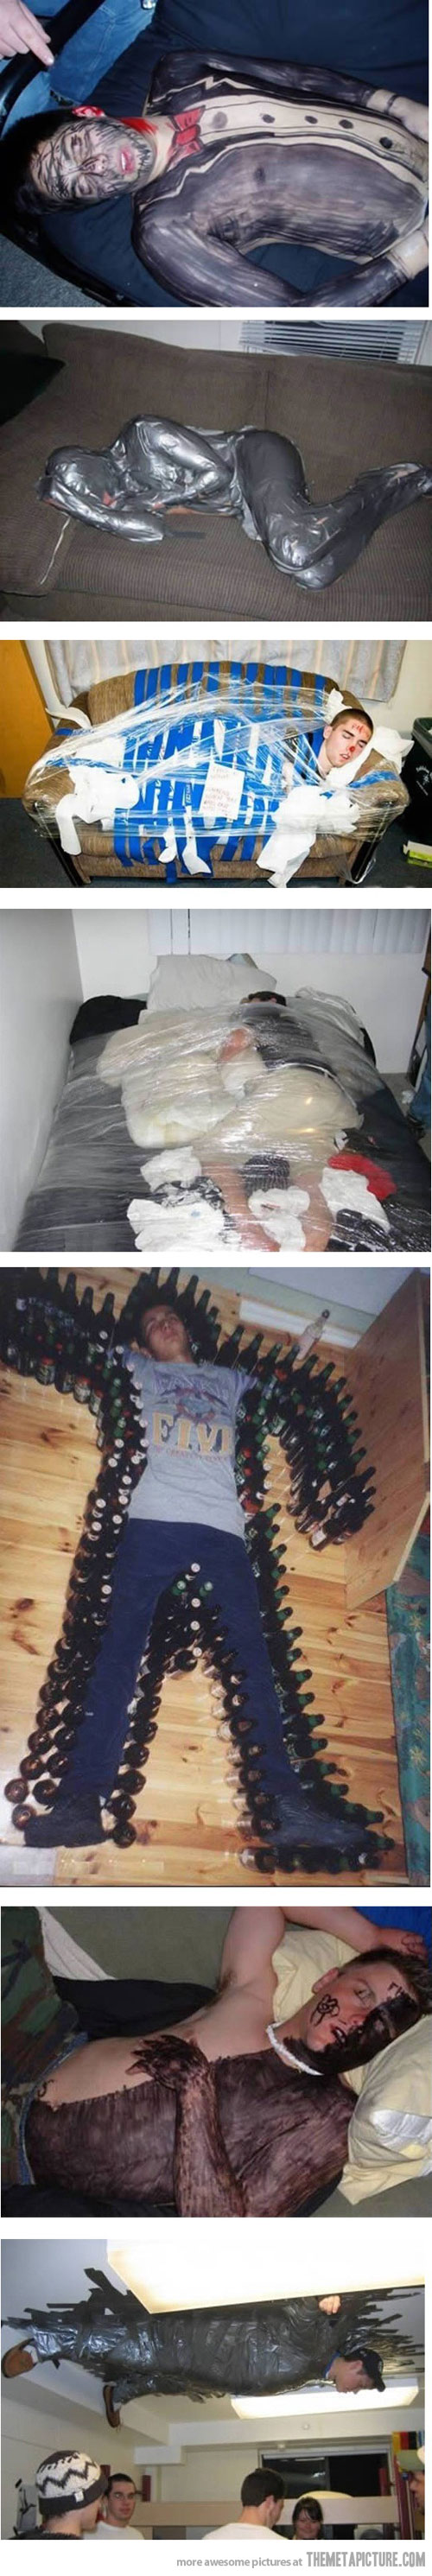 Reasons not to drink, especially w/ friends like these